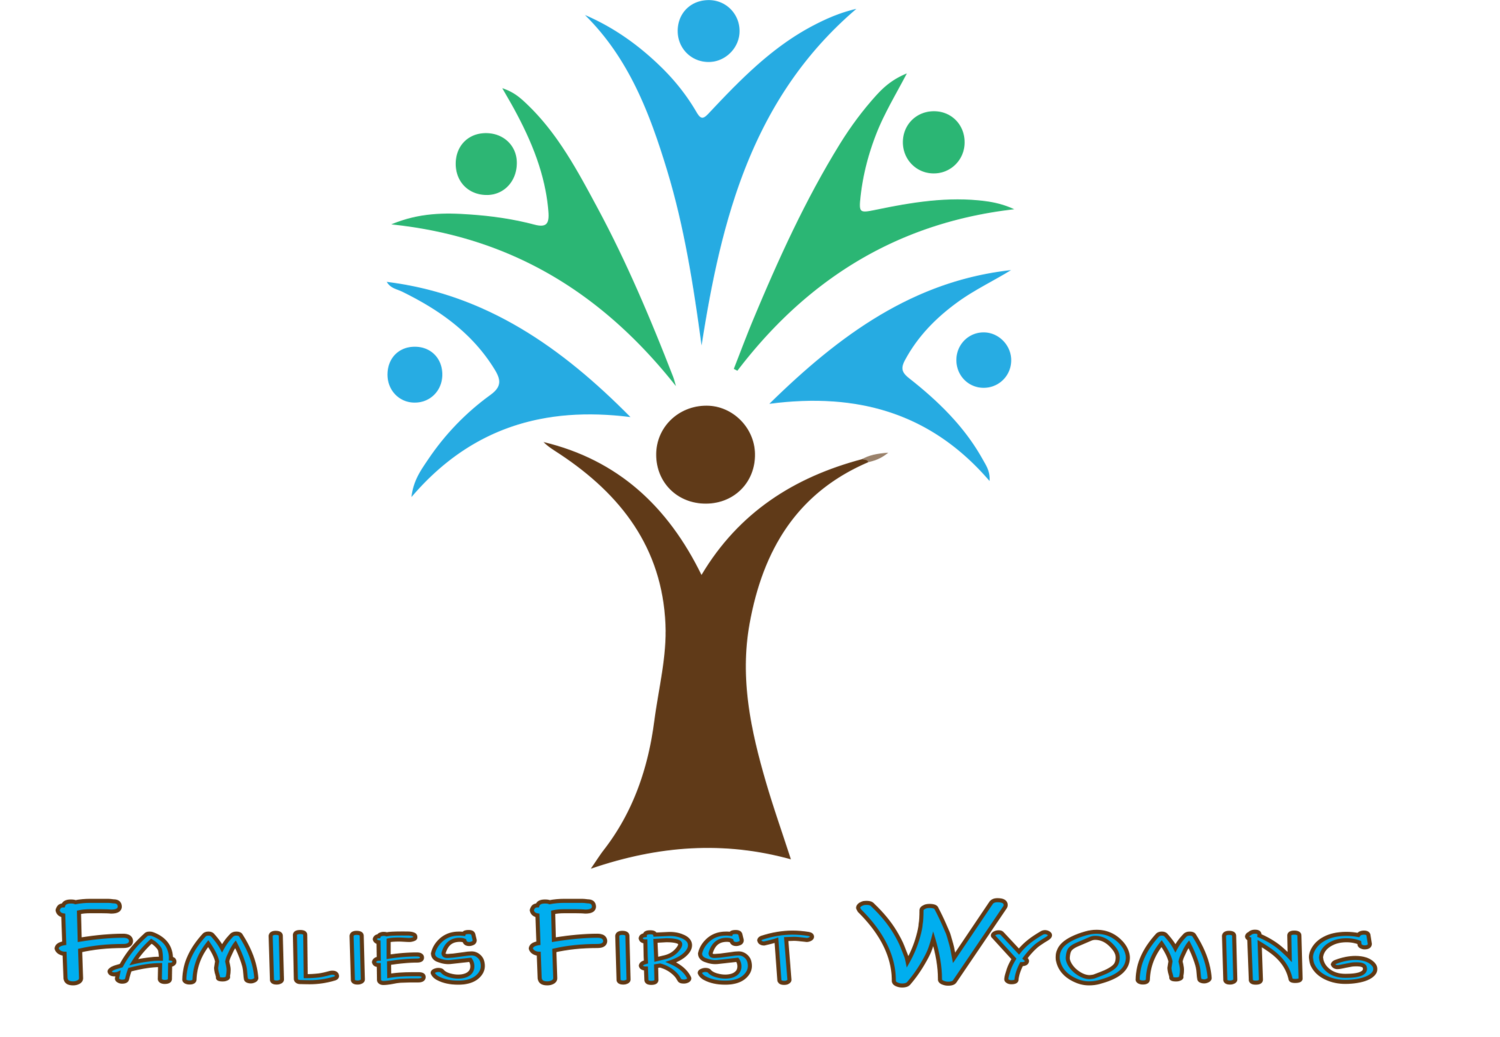 Families First Wyoming